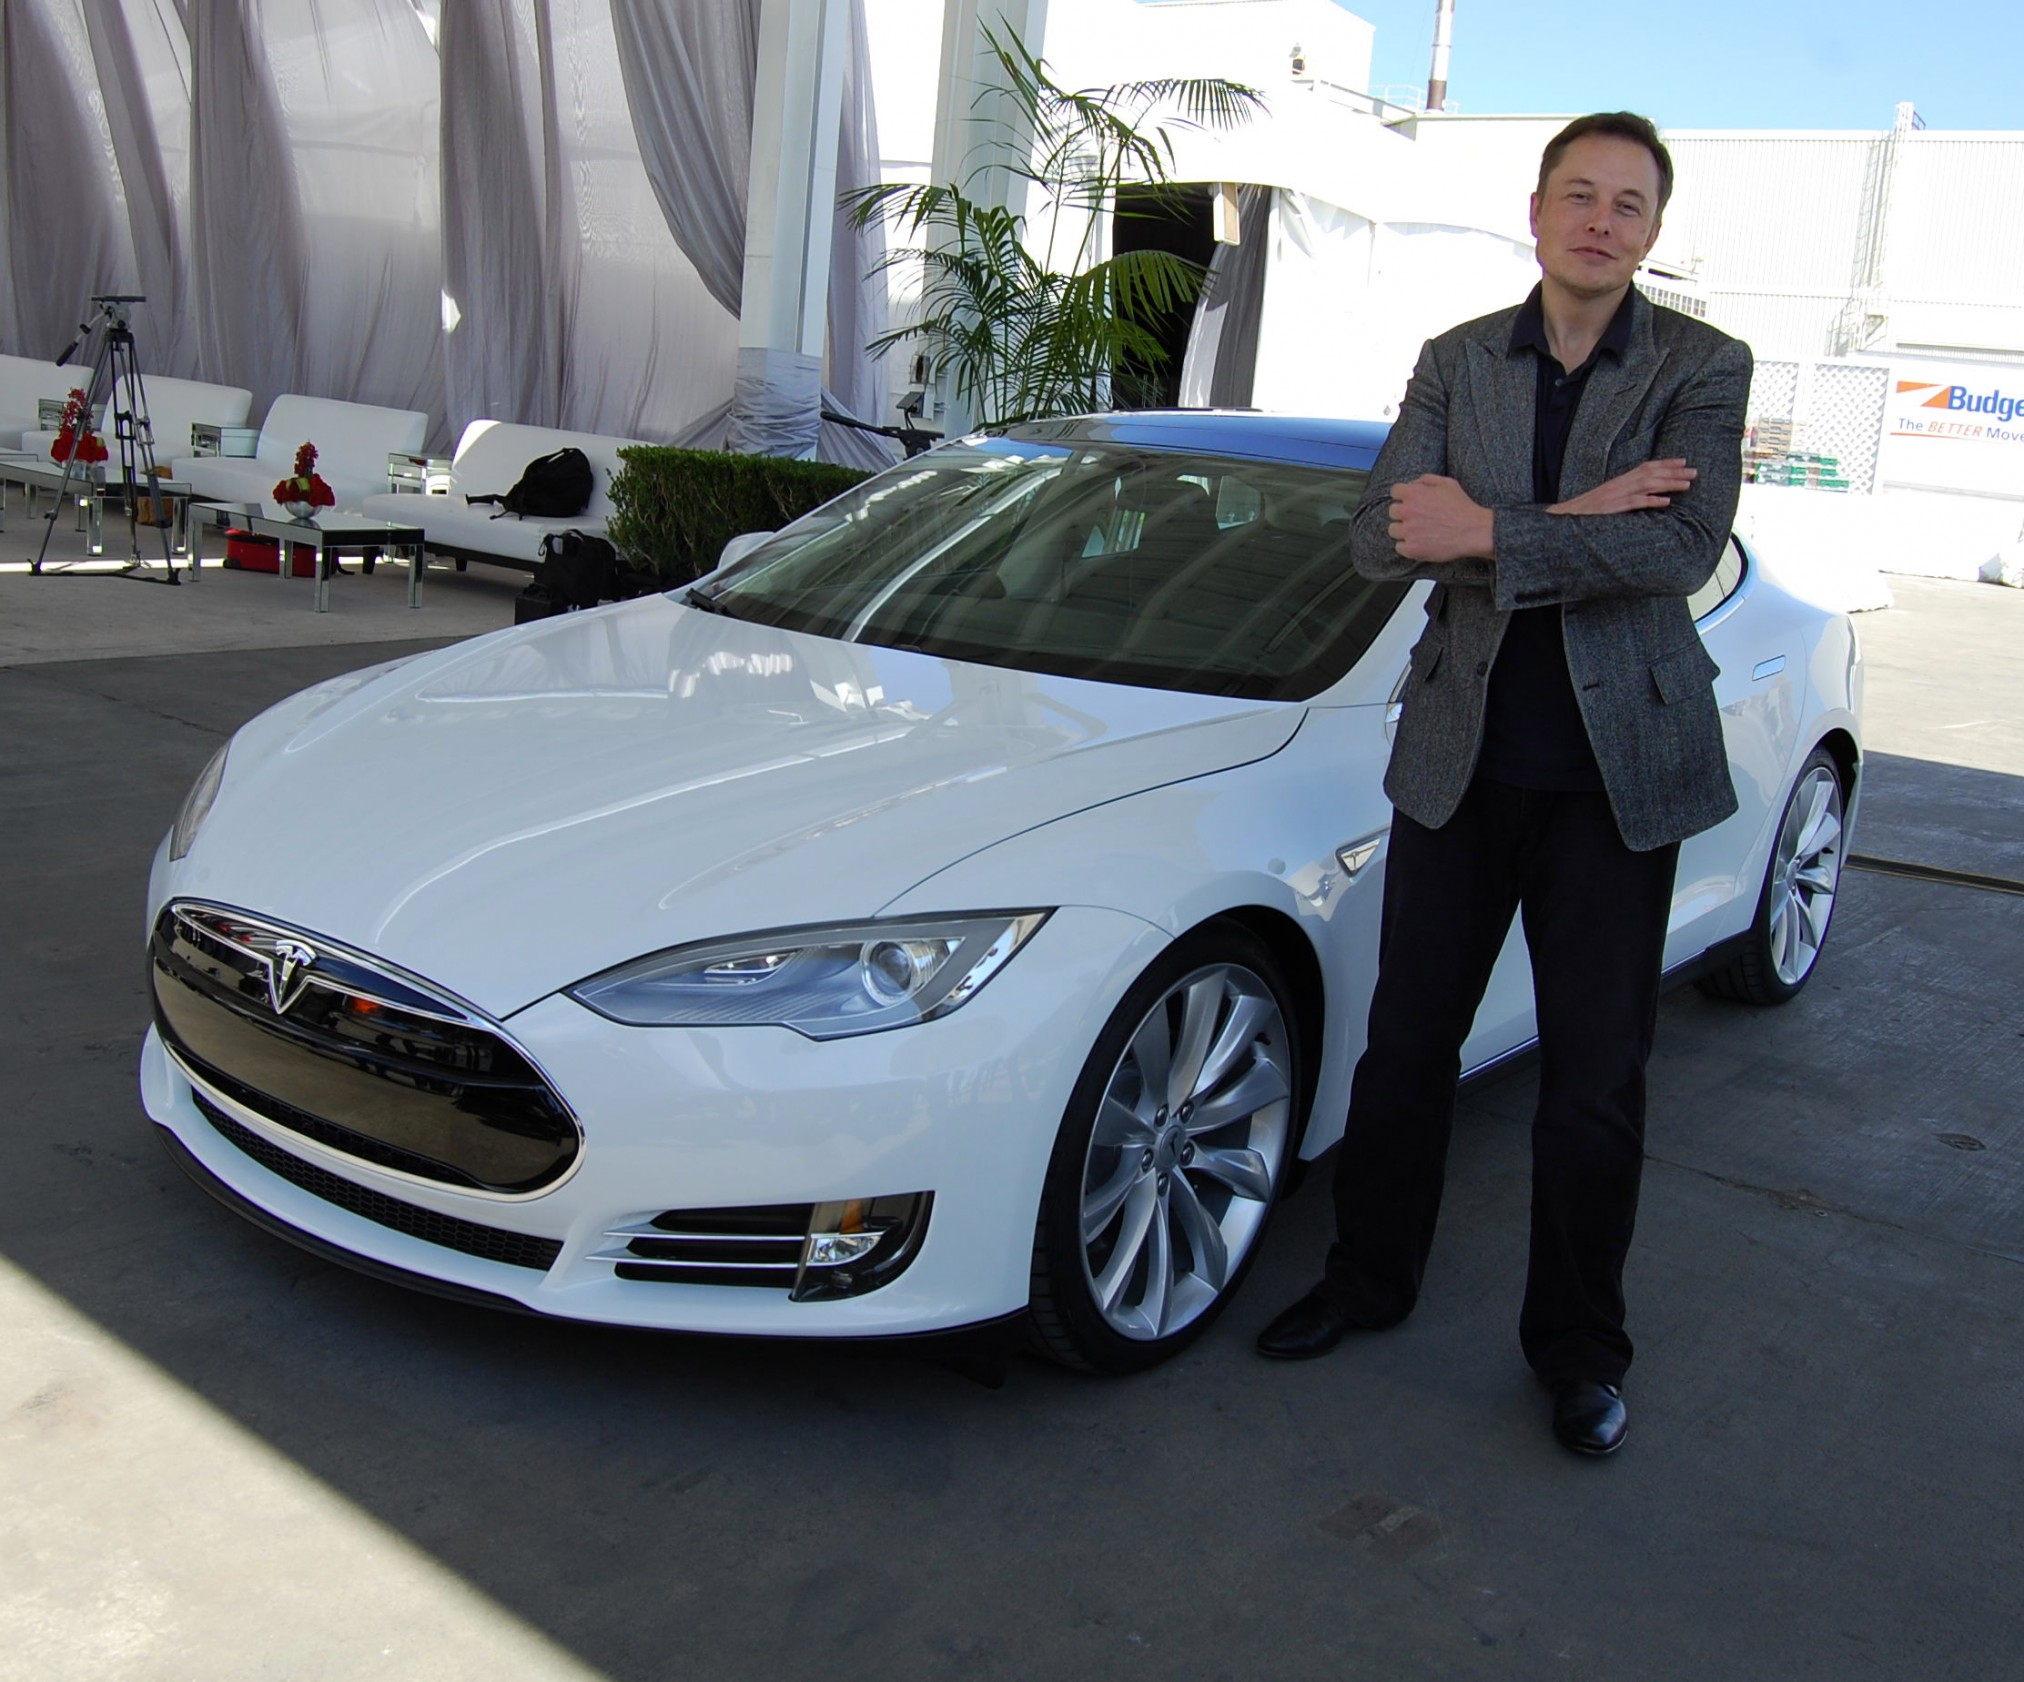 Musk S Master Plan Part Deux Hinges On Scale Timelines And Tesla Undervalued Workforce